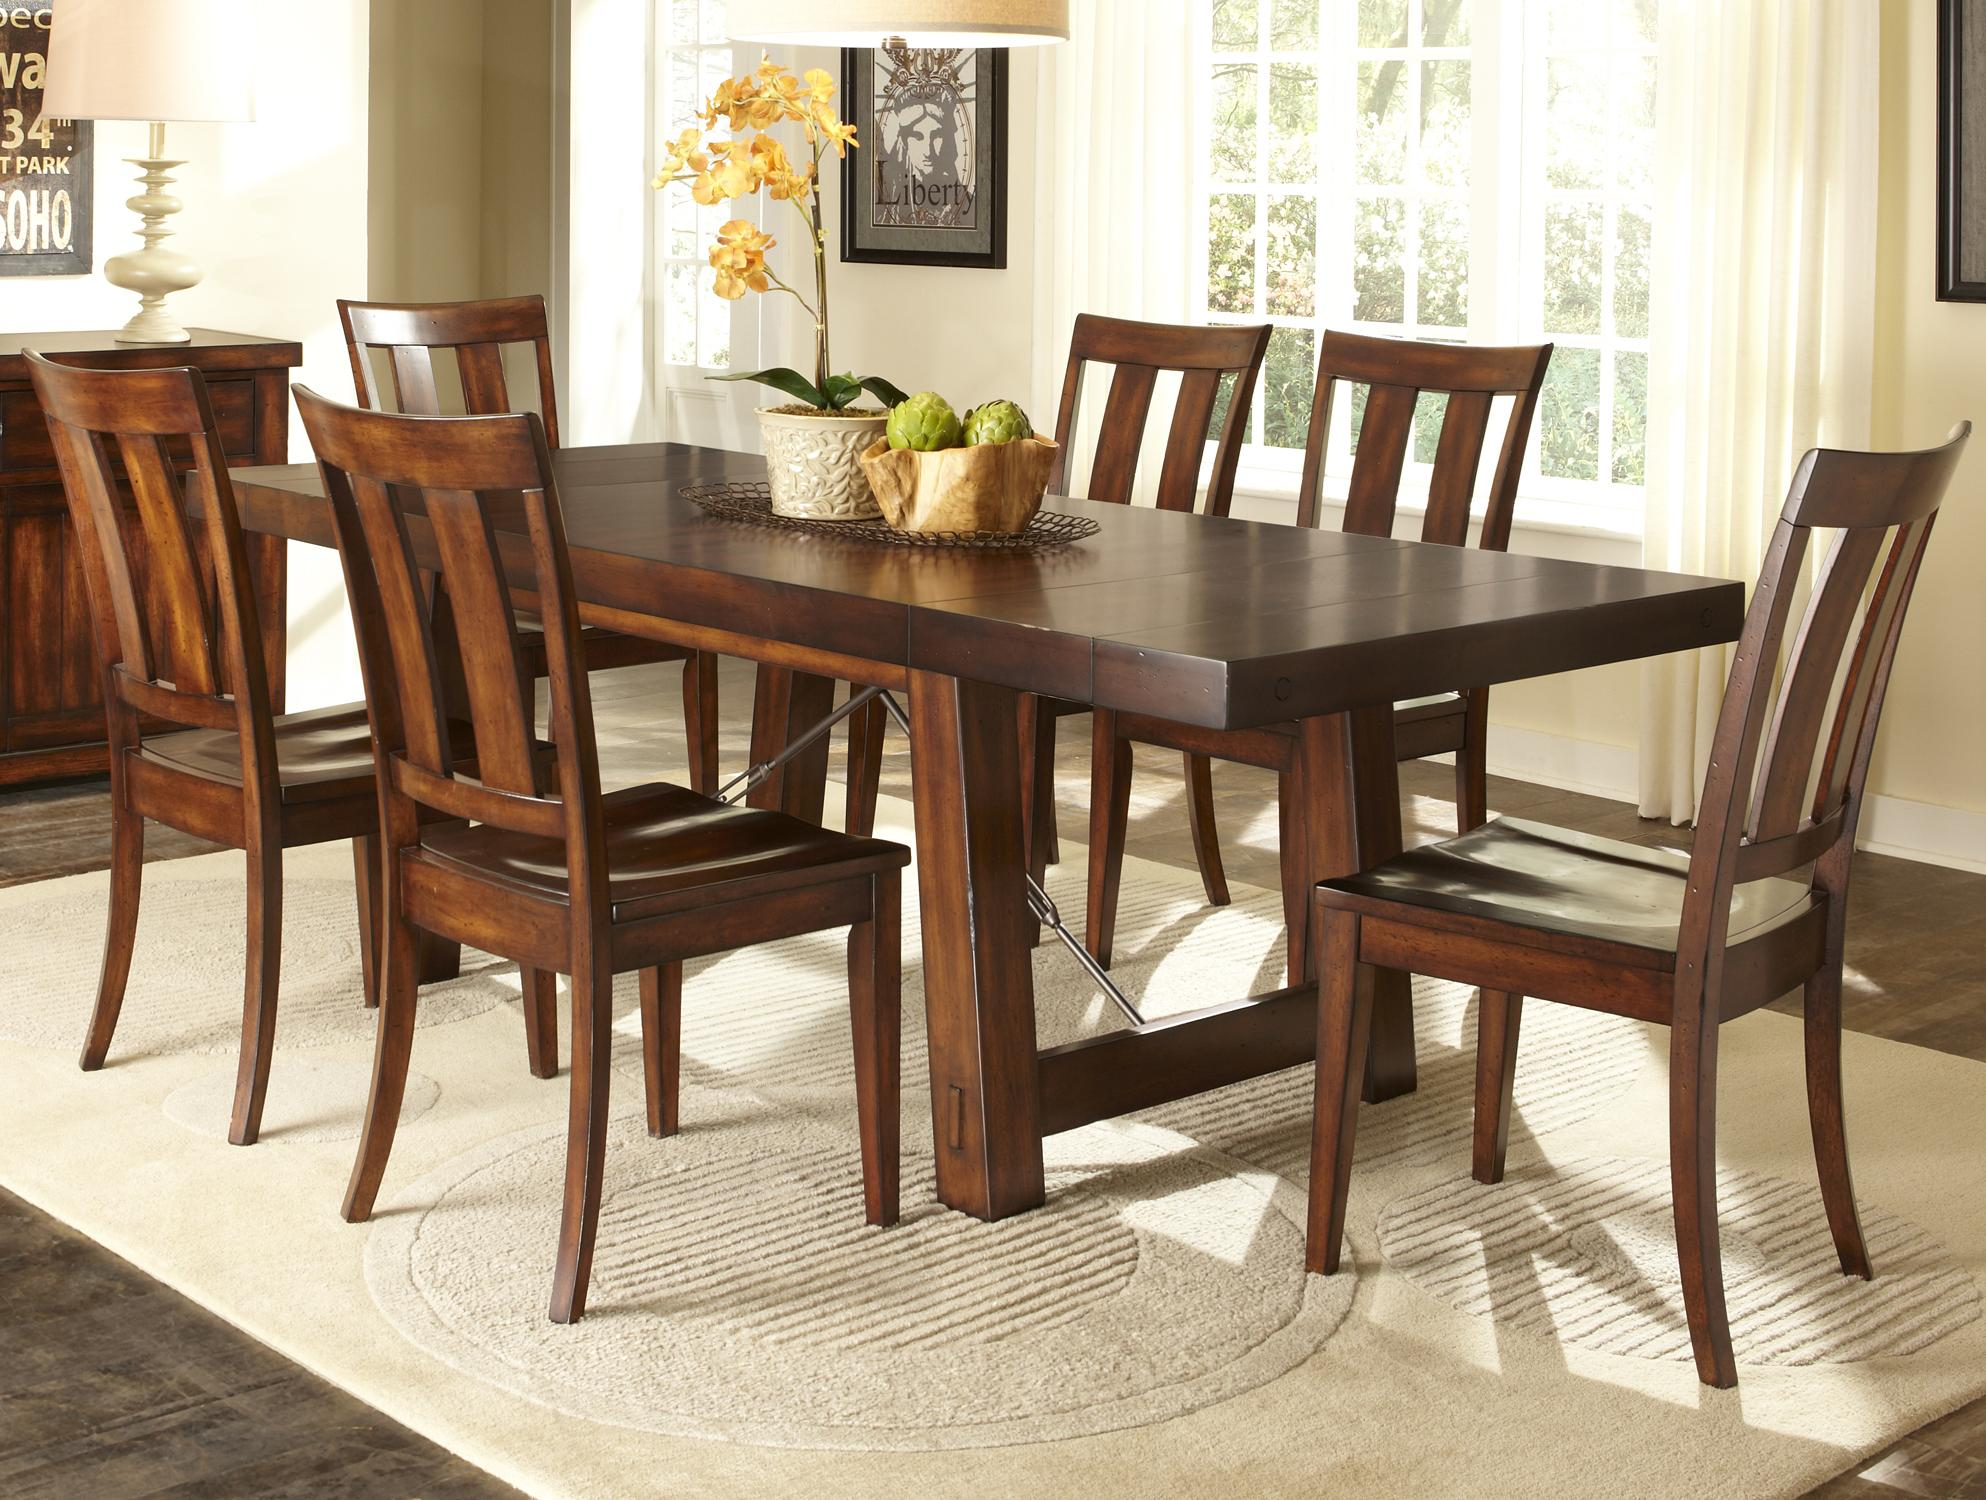 Good 7 Piece Dining Table With Slat Back Chair Set